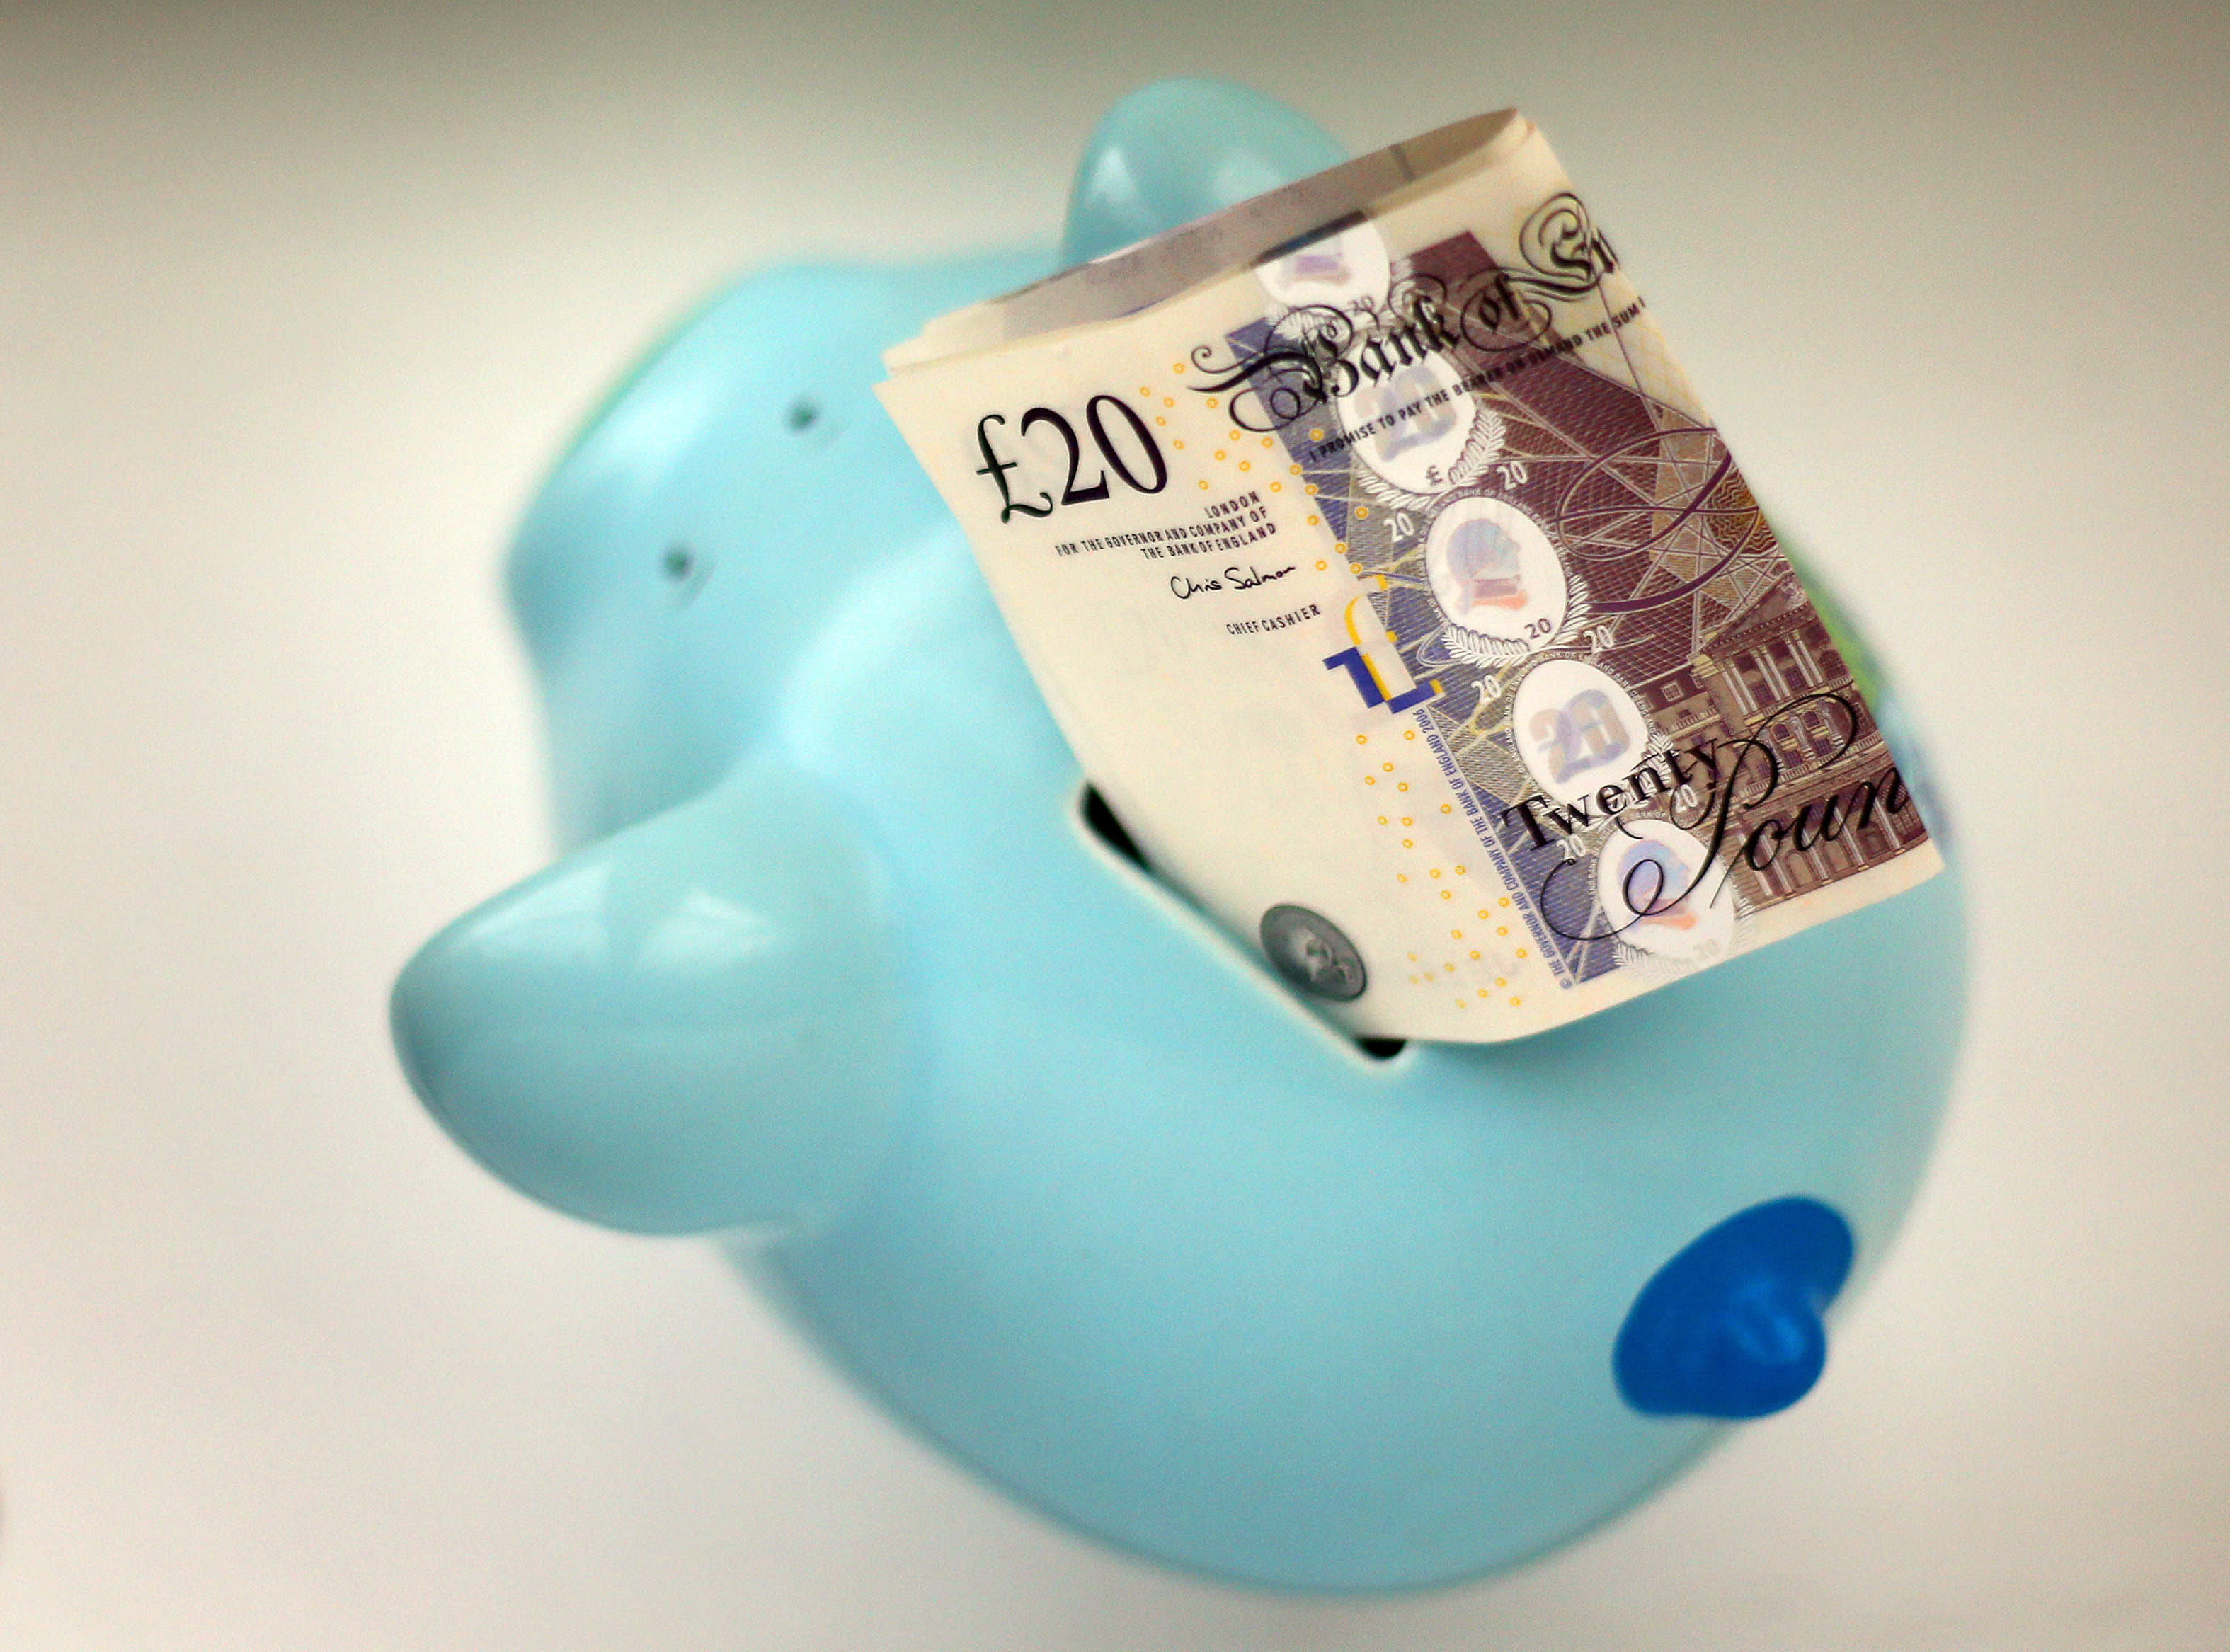 Pensions see Covid recovery but annuities stay low